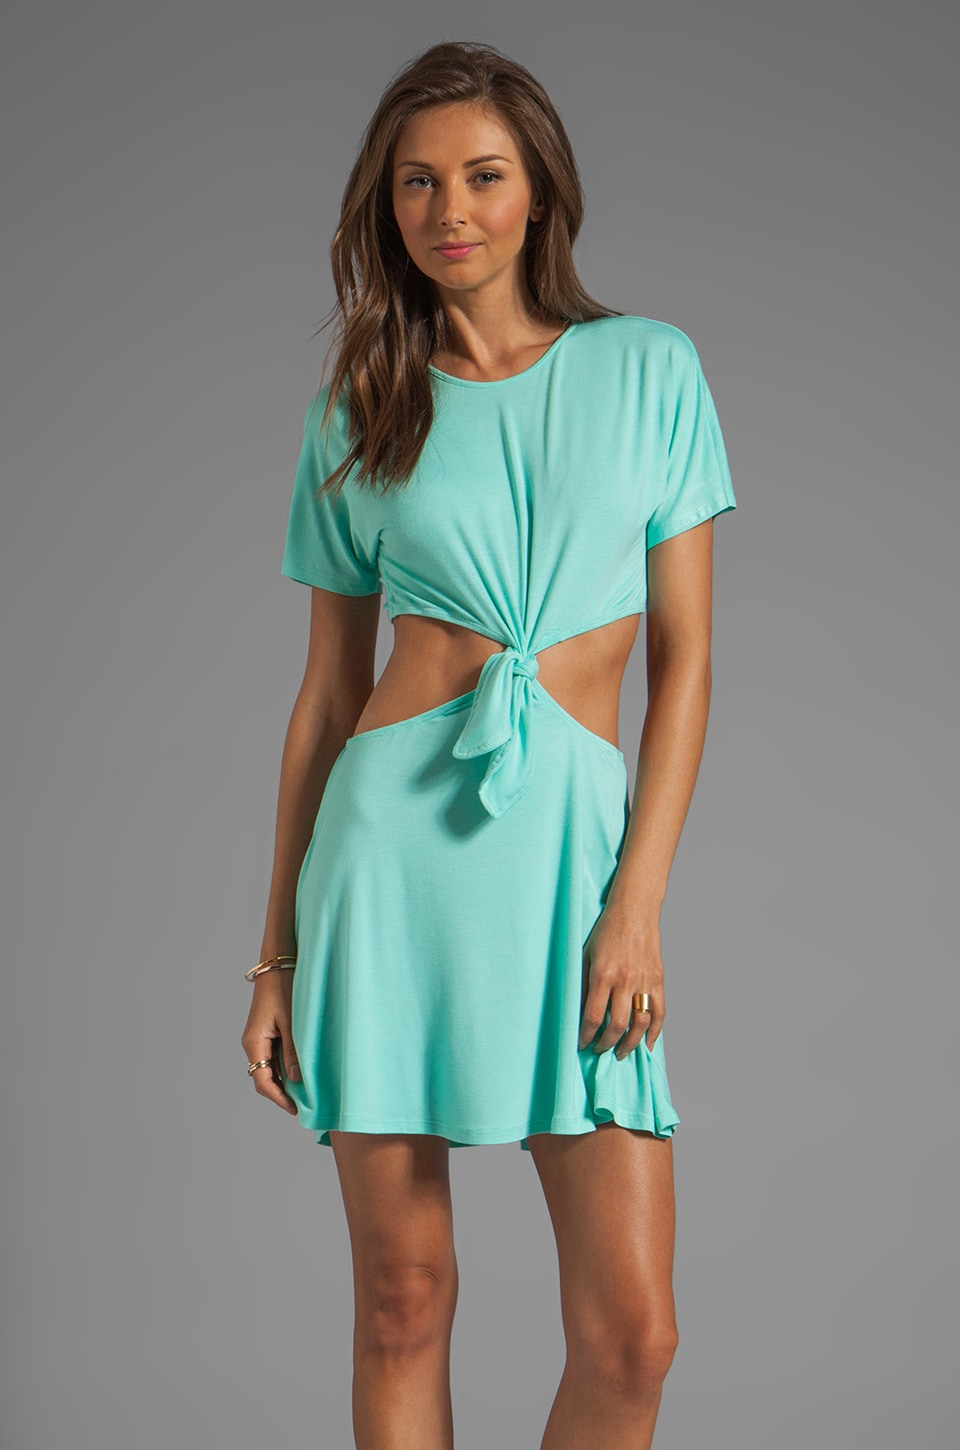 Naven Casuals Knotted T Dress in Seafoam